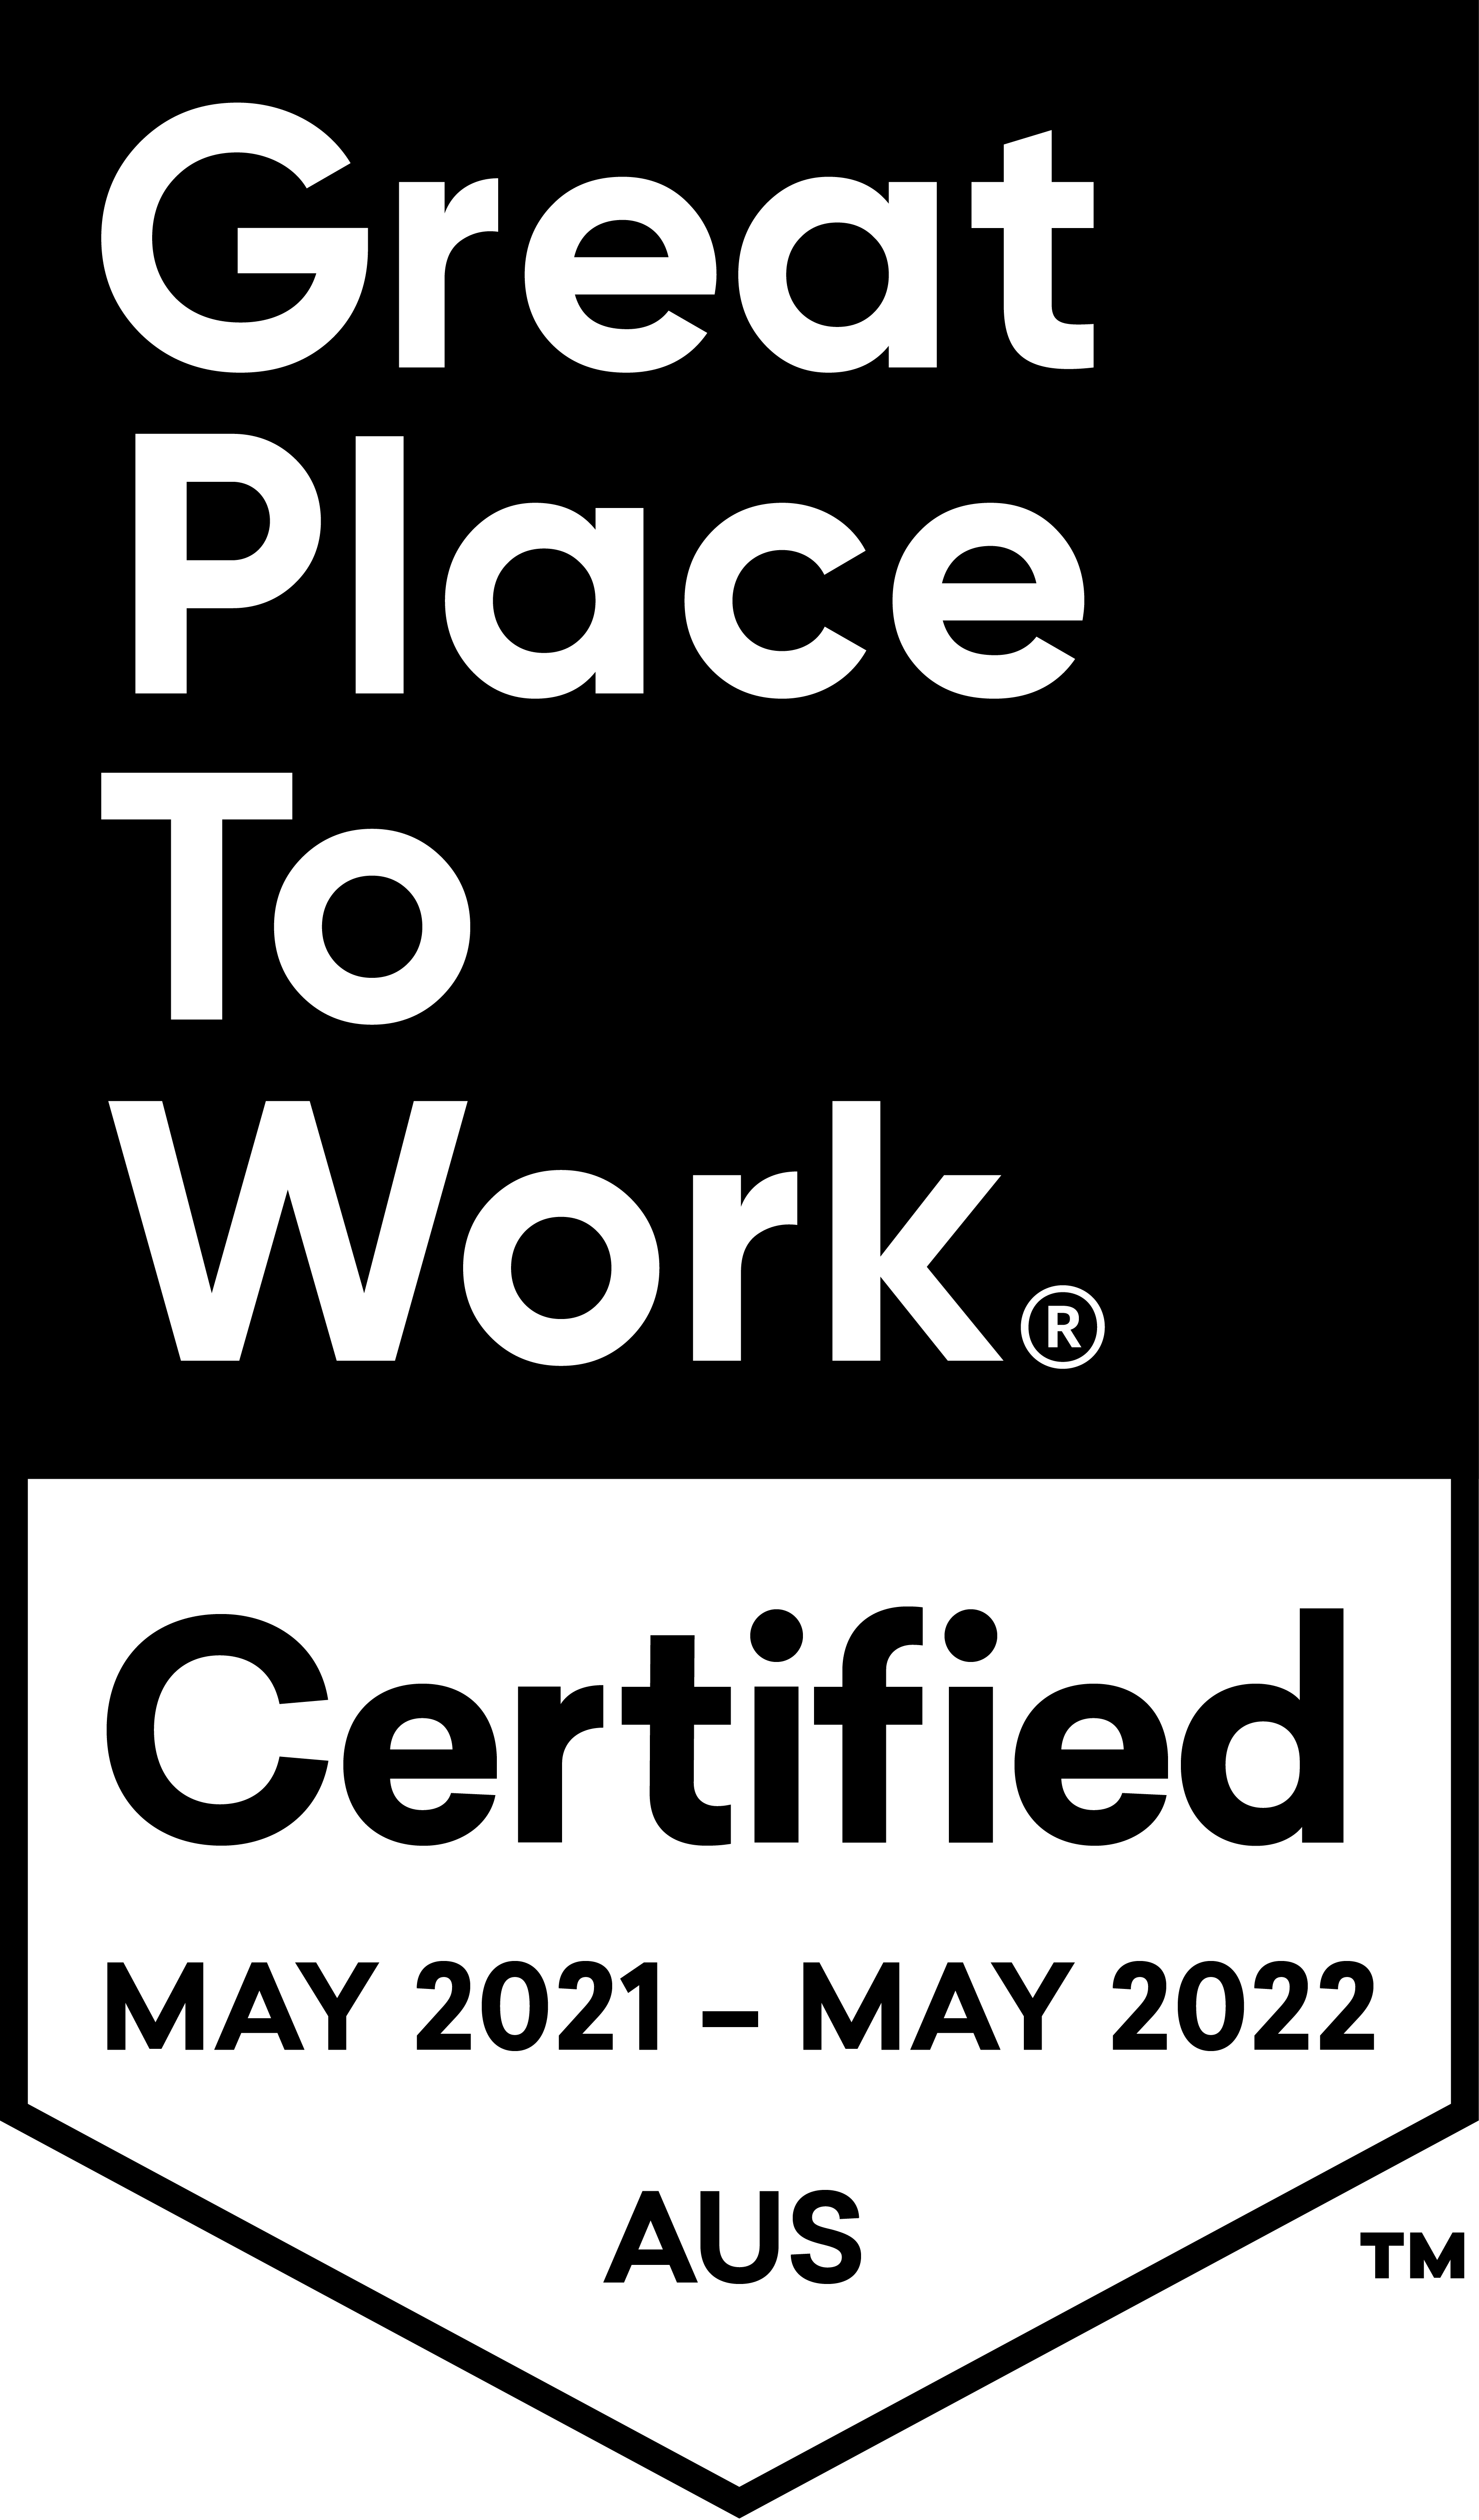 A badge displaying 'Great Place to Work. Certified May 2021 - May 2022'.